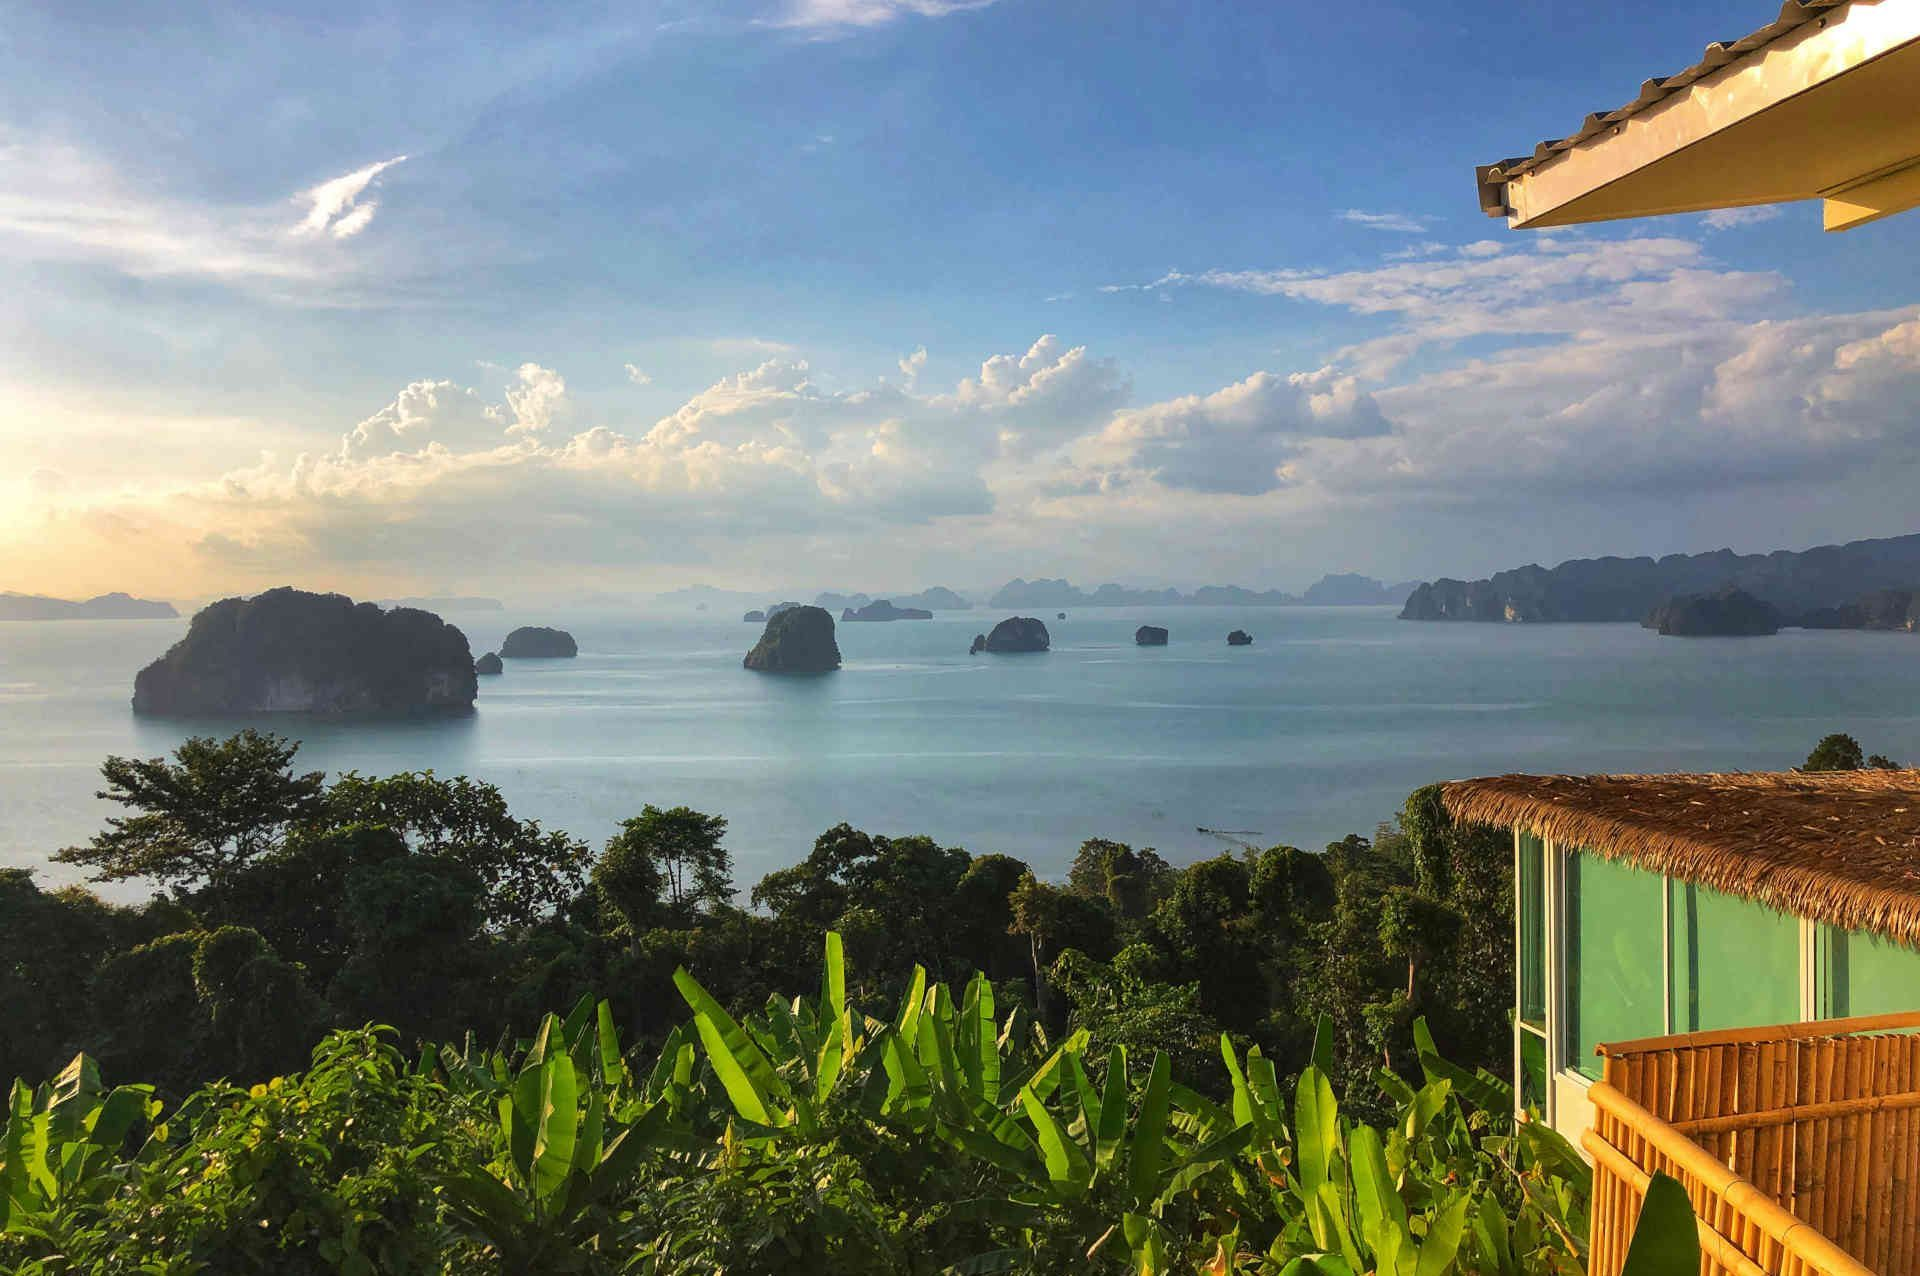 A romantic view of the islands at sunset in Krabi